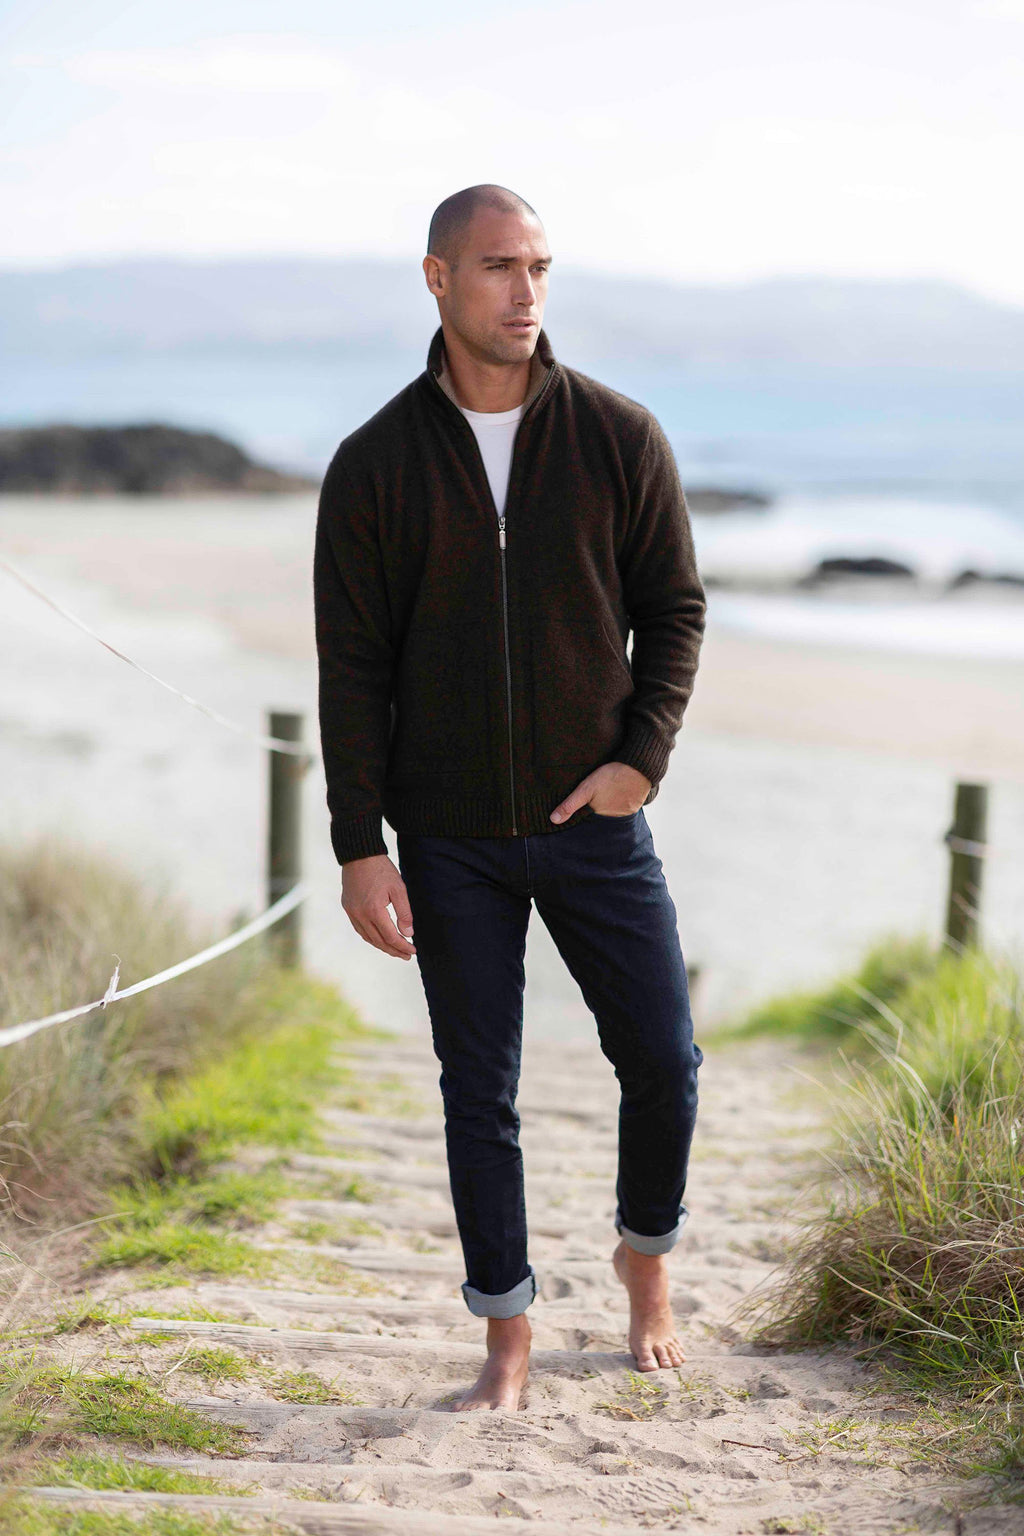 ZIP JACKET WITH POCKETS - Woolshed Gallery